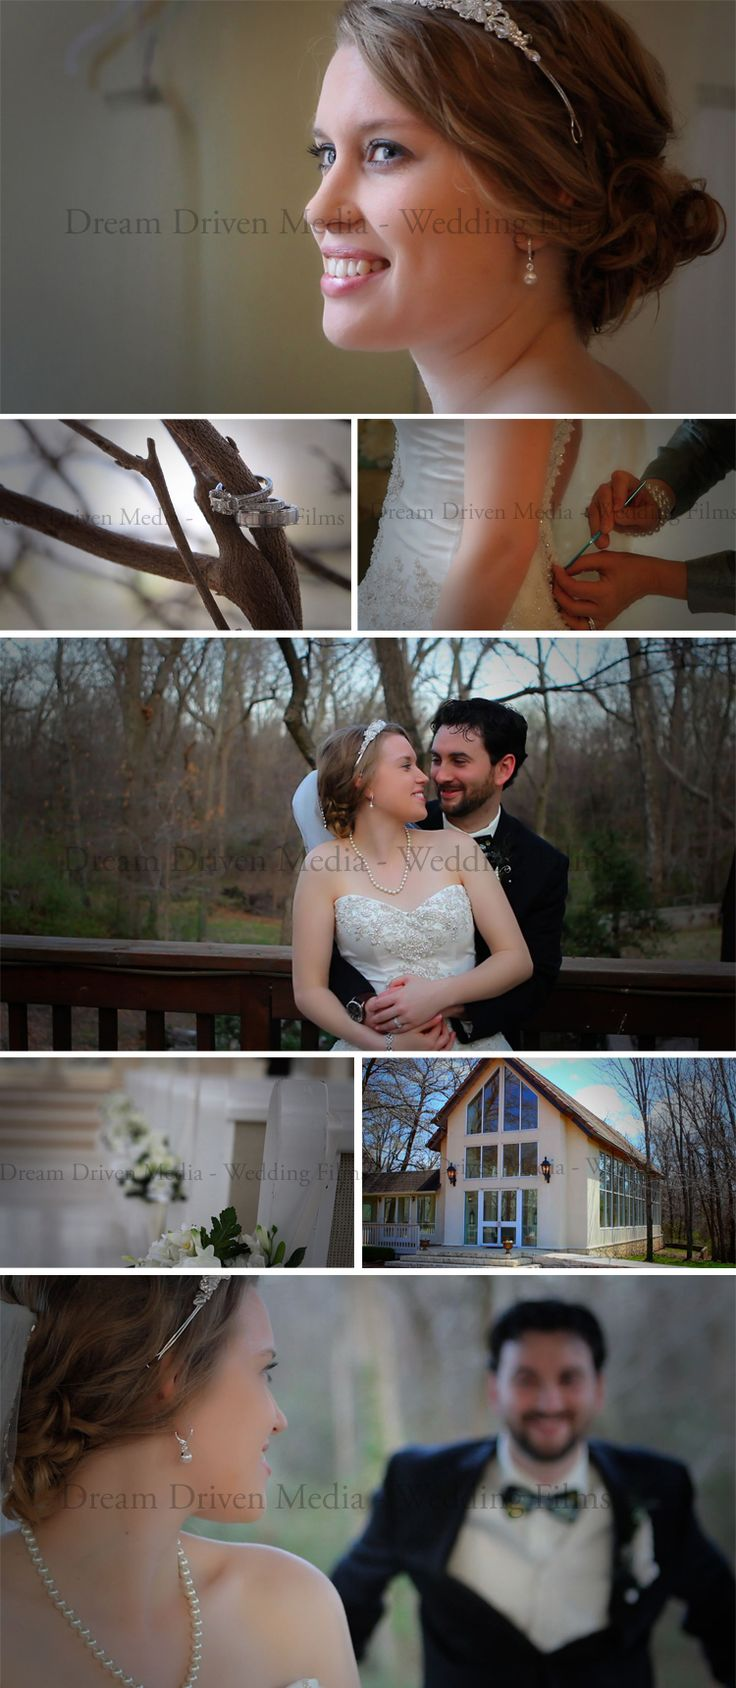 #Dallas #Wedding #Photography and #Videography